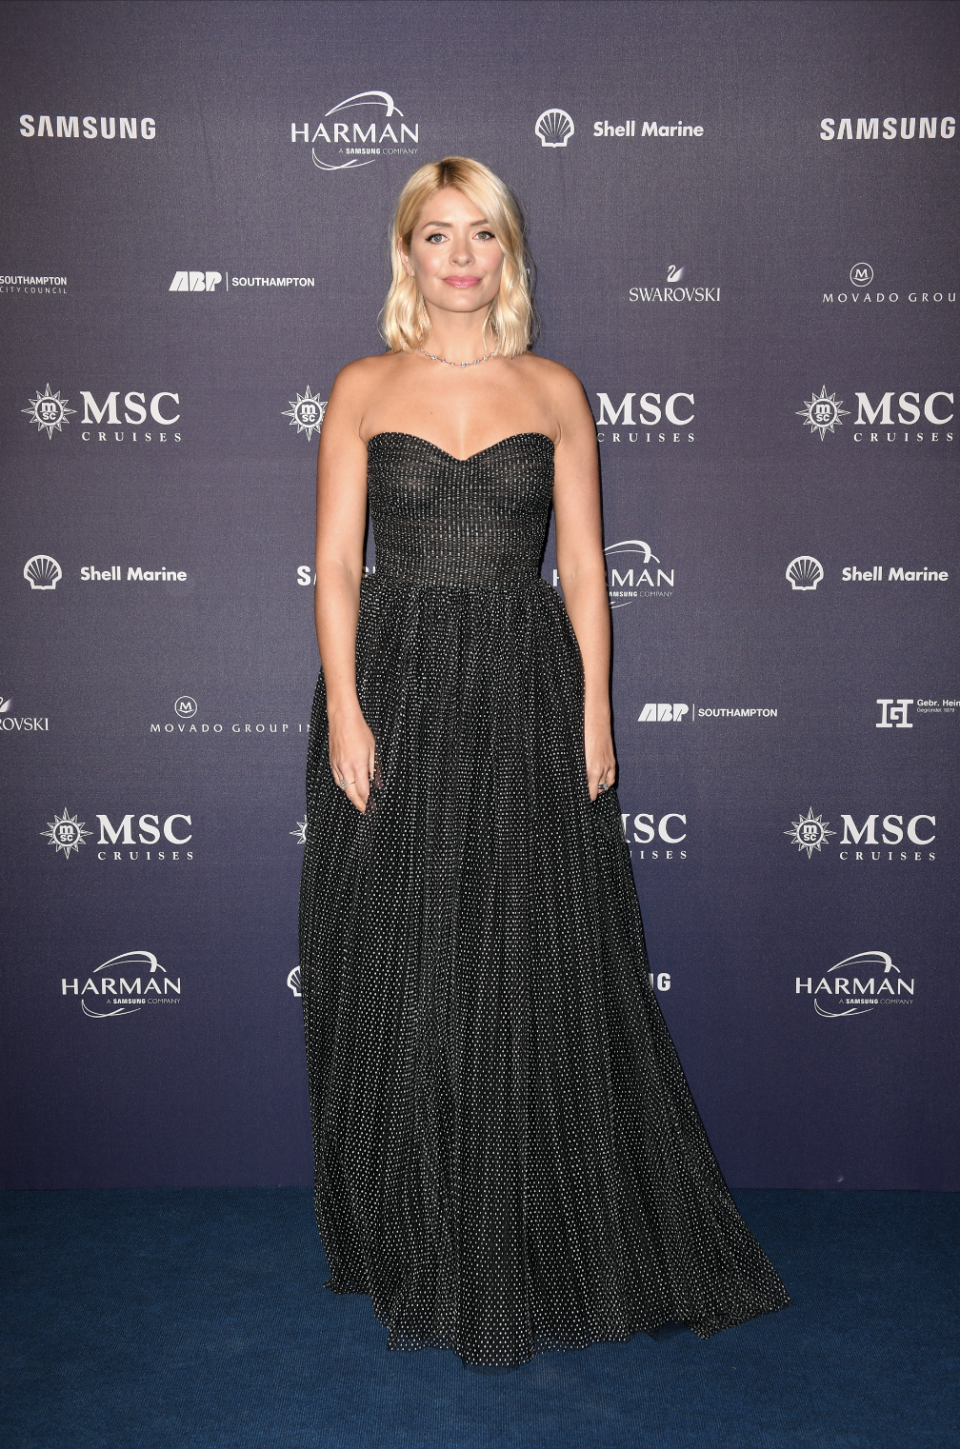 <p>The television presenter wore a spotted gown by Filipino-American designer Monique Lhillier to attend the MSC Cruises' naming ceremony for their newest ship, the Bellisima, in Southampton.<em>[Photo: Getty]</em> </p>